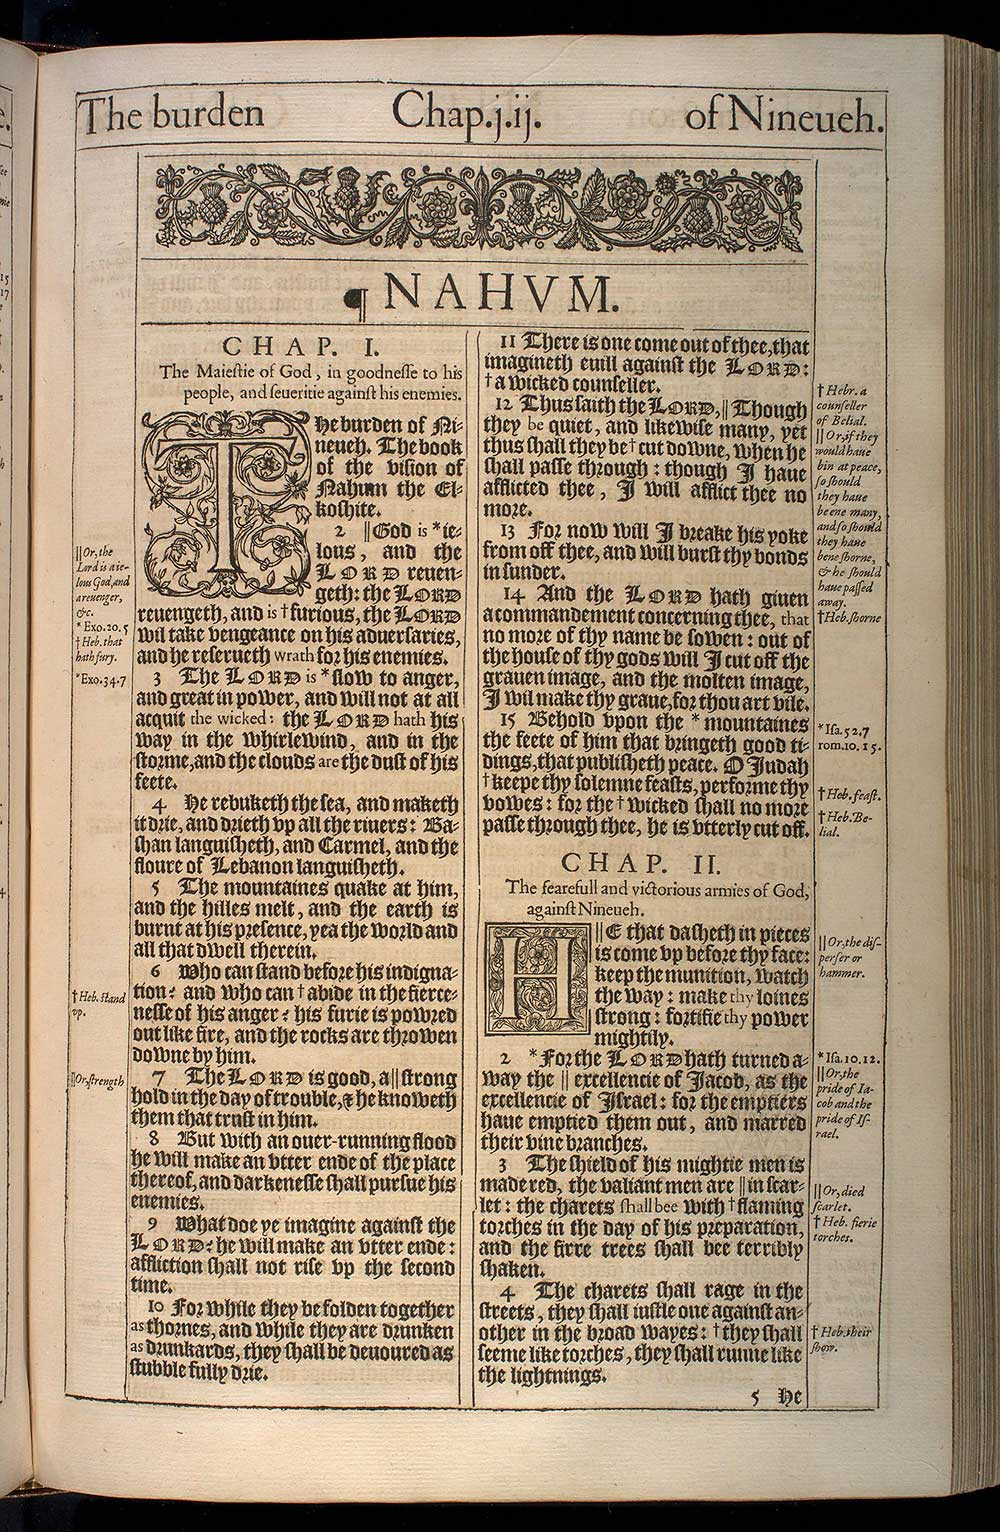 Nahum Chapter 1 Original 1611 Bible Scan